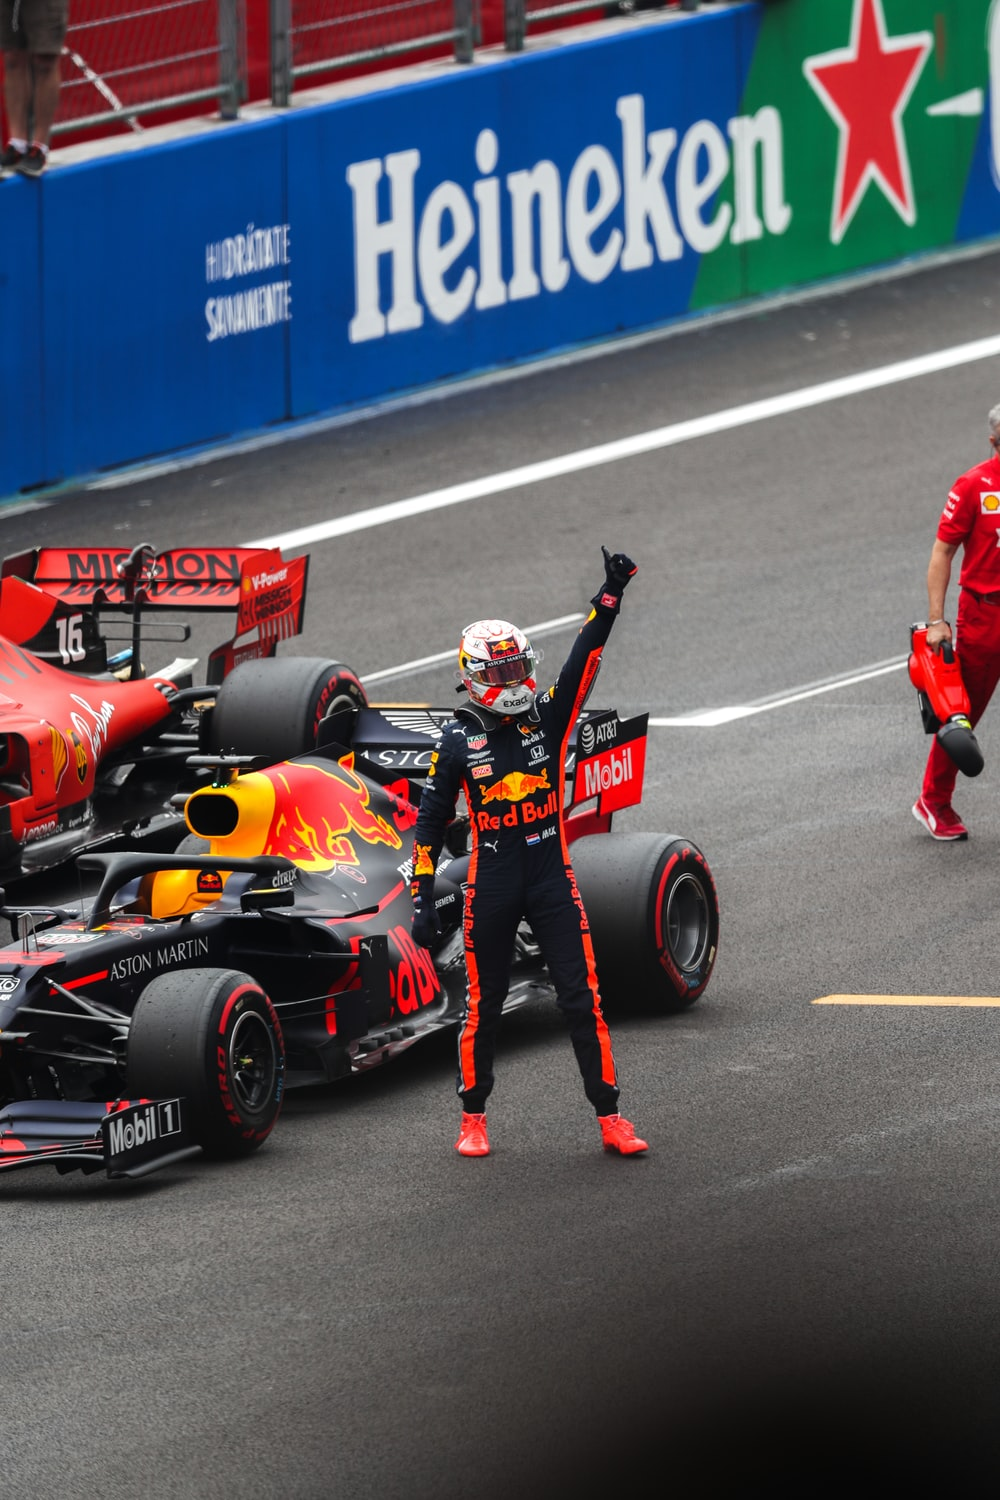 man raising his left hand in front of race car